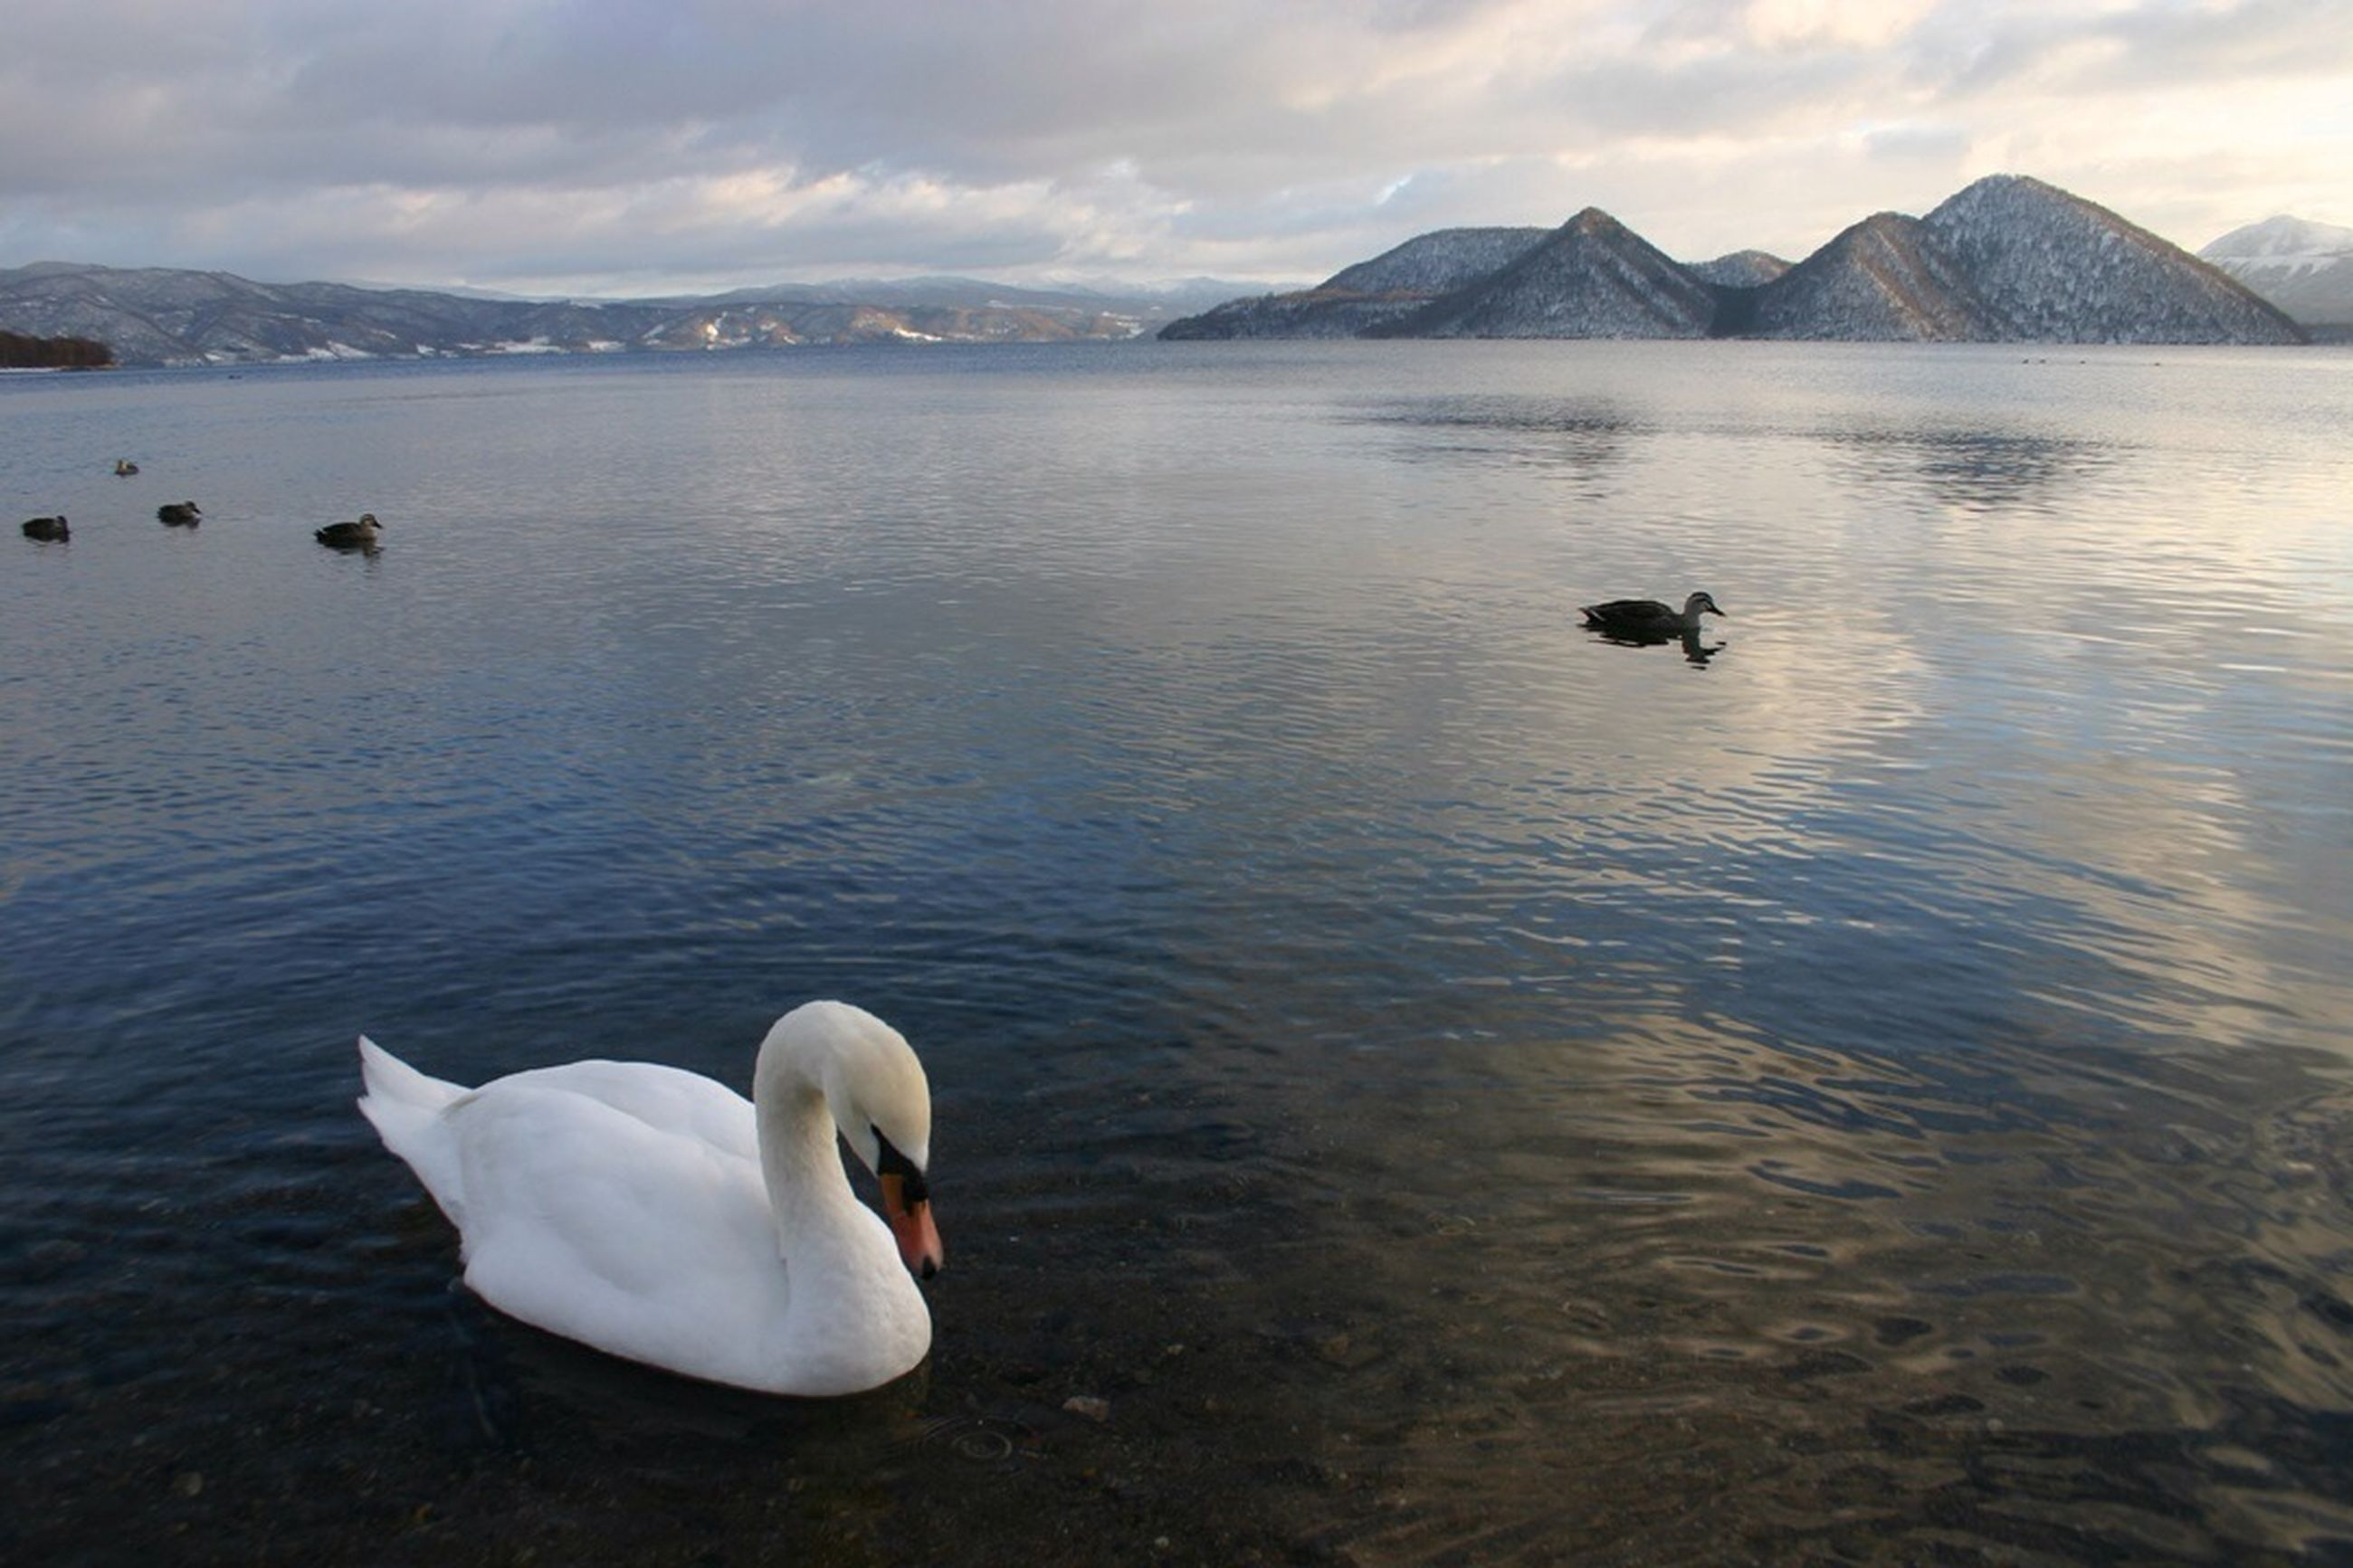 bird, water, swan, animal themes, lake, wildlife, animals in the wild, swimming, mountain, rippled, waterfront, water bird, reflection, tranquility, tranquil scene, nature, beauty in nature, sky, white color, mountain range